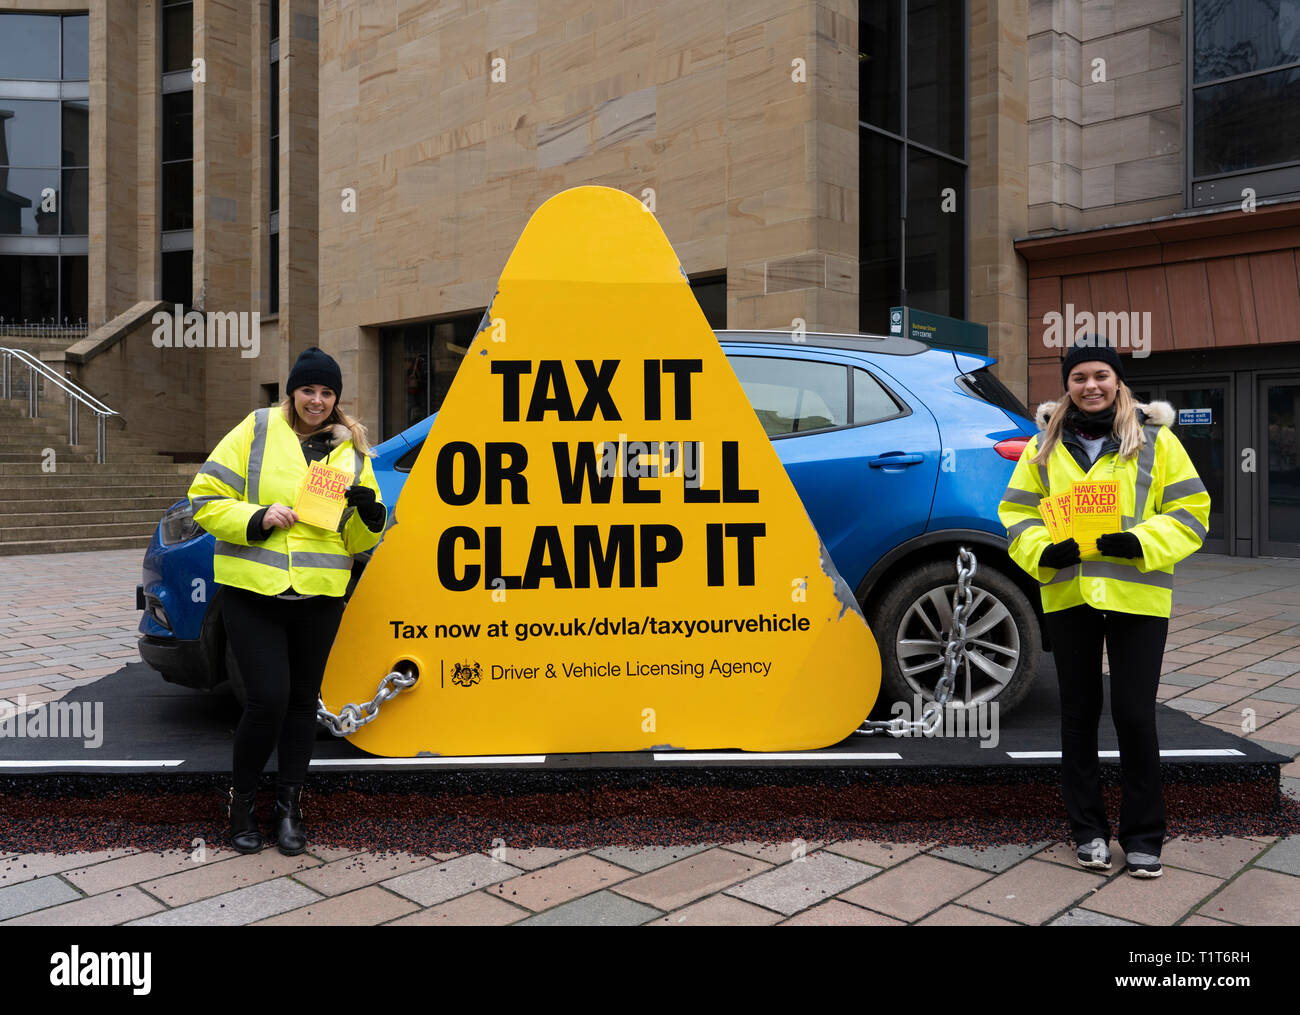 DVLA ( Driver & Vehicle Licensing Agency) public campaign to promote car tax in central Glasgow, Scotland, UK - Stock Image